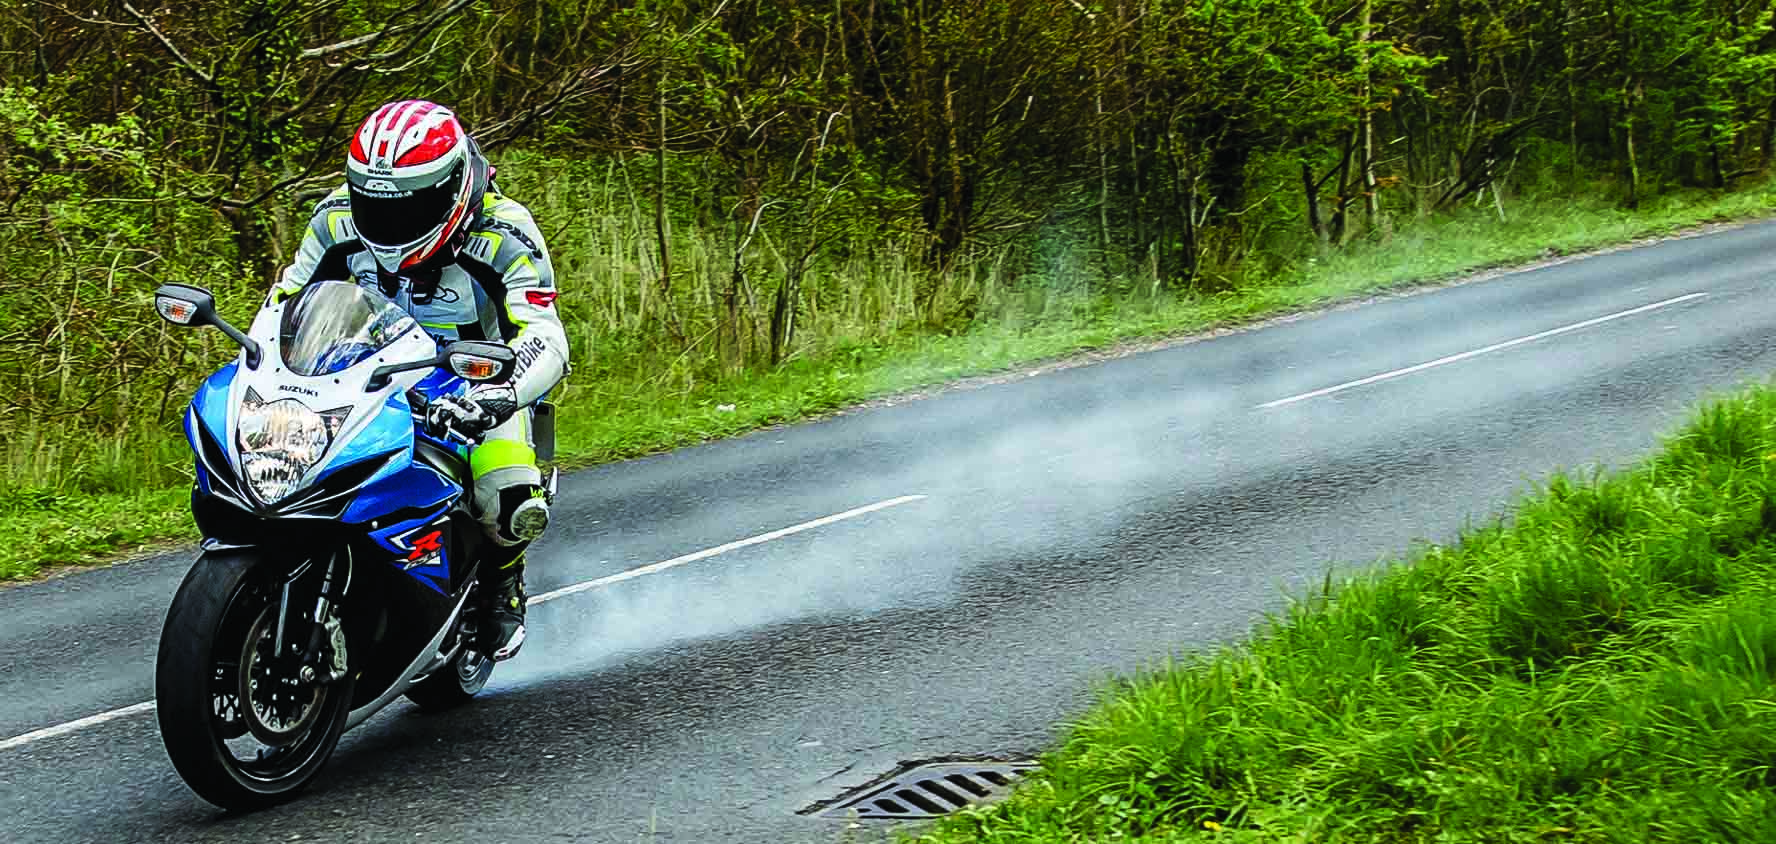 Short Change 600cc Supersport Shoot Out With A Twist